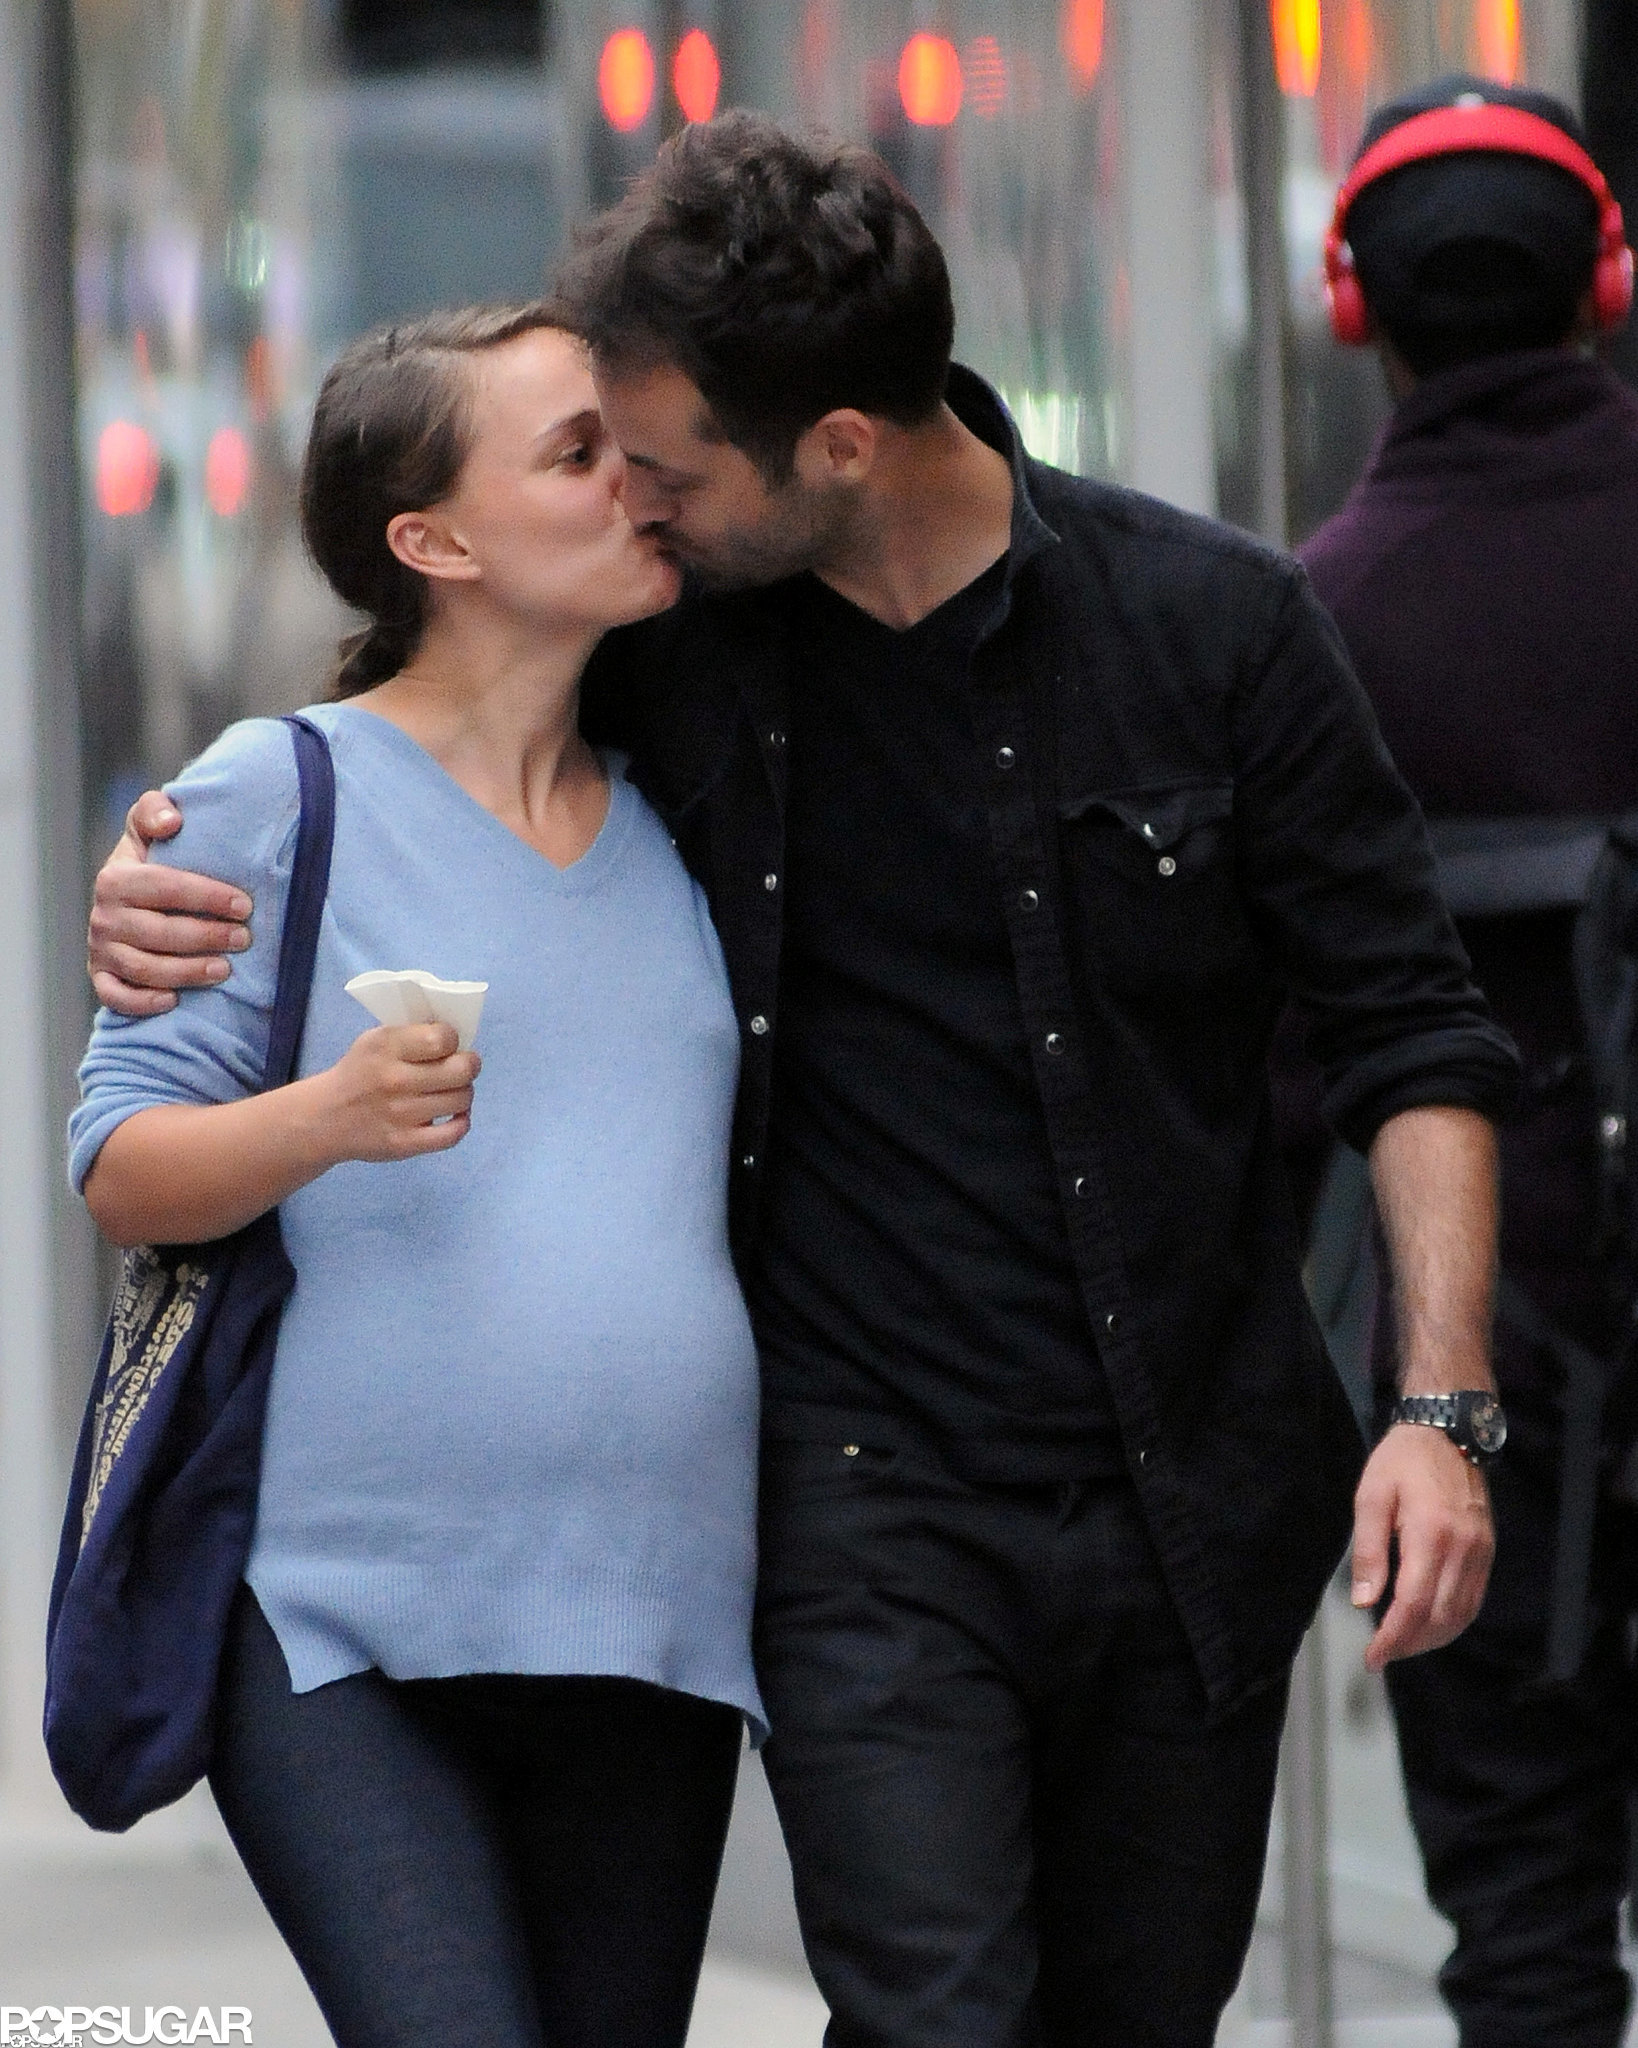 Natalie Portman and Benjamin Millepied couldn't keep their hands off each other in May 2011 in NYC.